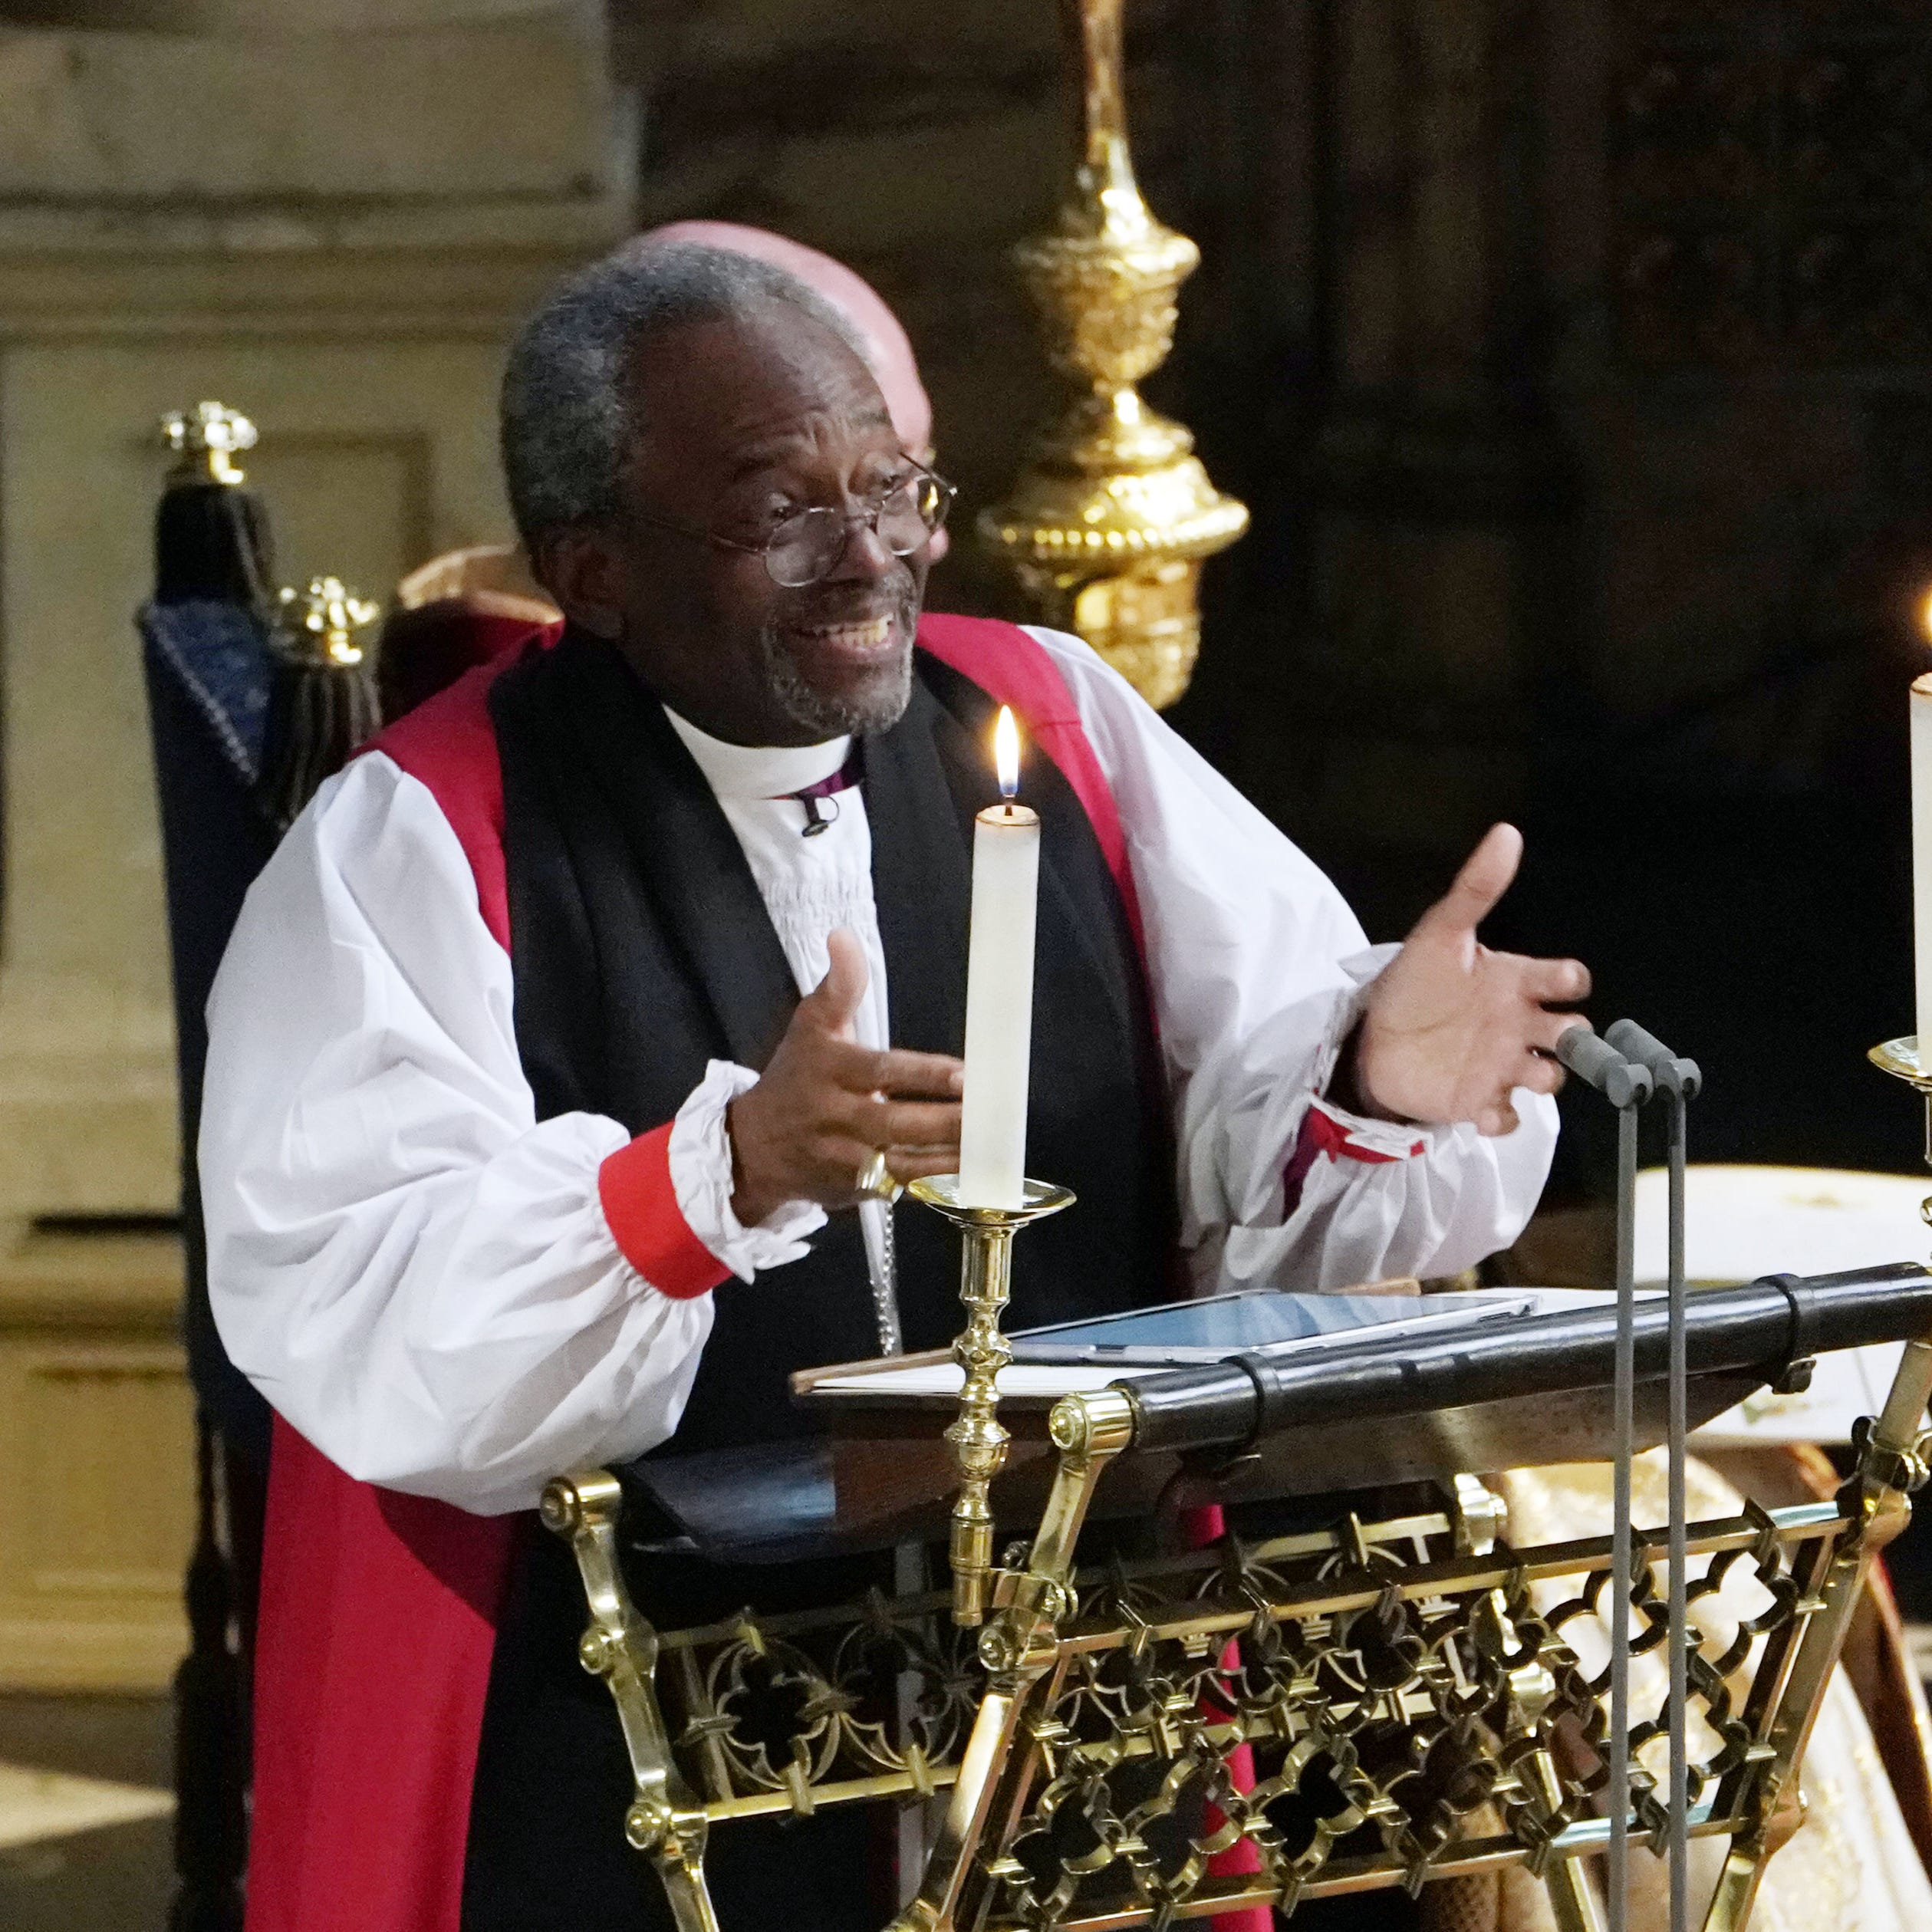 He wowed viewers at Meghan Markle's royal wedding. This week, Bishop Michael Curry visits Memphis